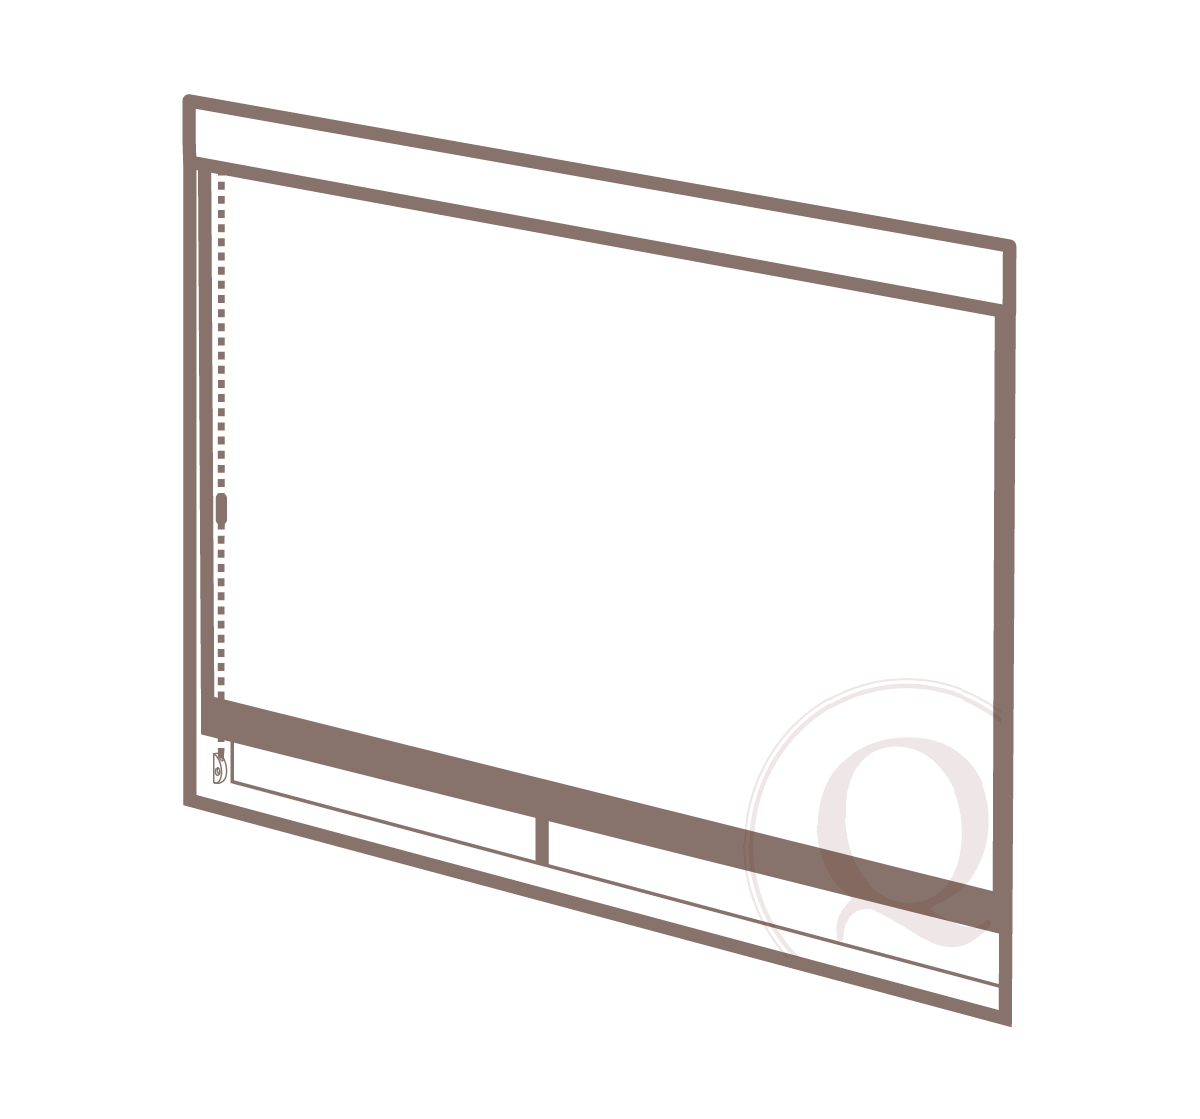 inside mount - When a roller shade is mounted inside the window opening.